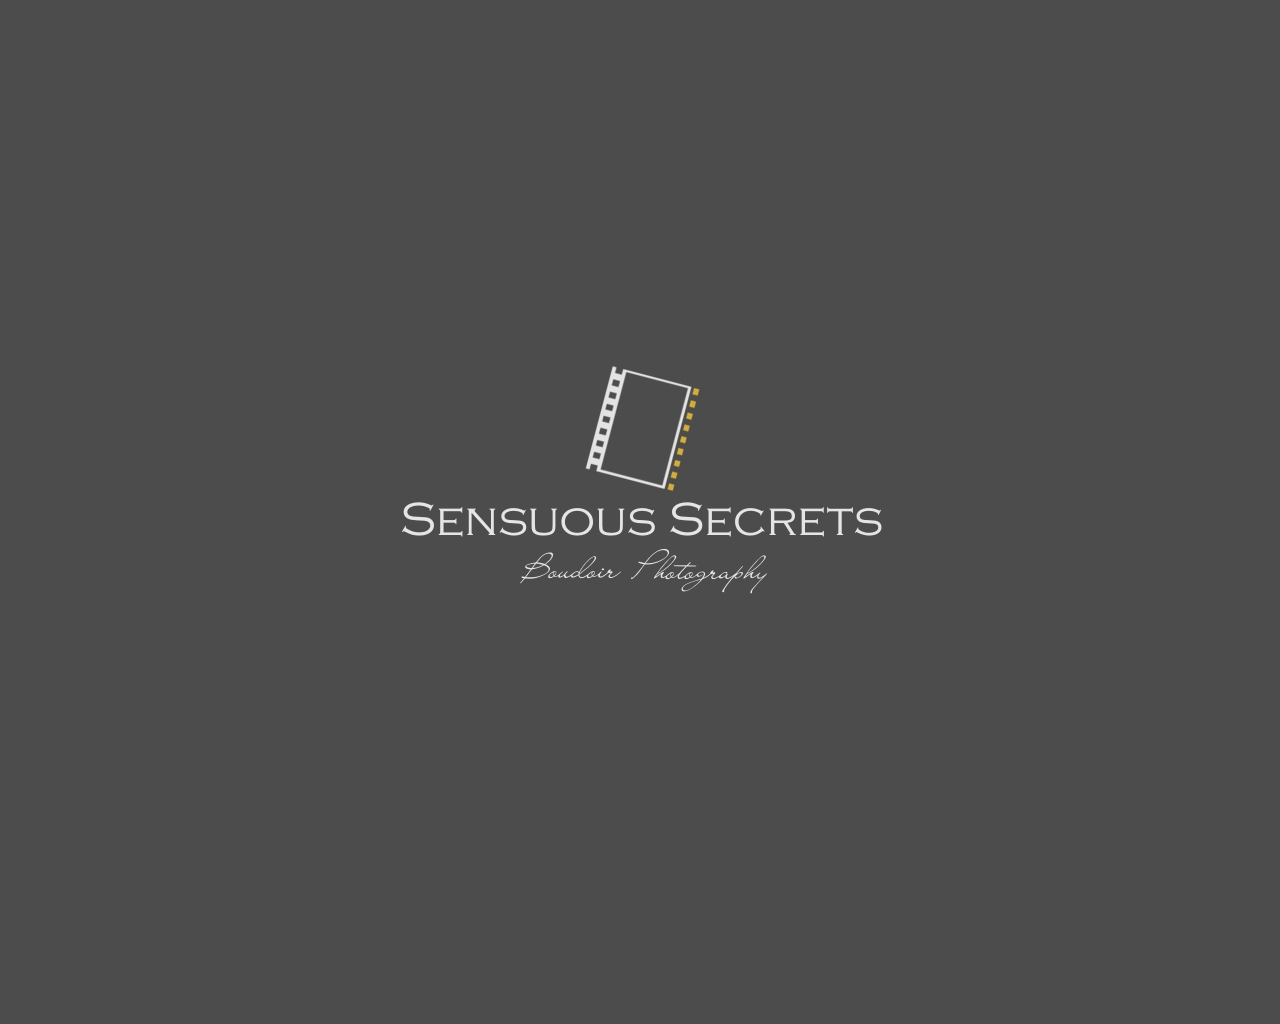 Logo Design by Q_Division_Designs - Entry No. 64 in the Logo Design Contest Artistic Logo Design for Sensuous Secrets Boudoir Photography.